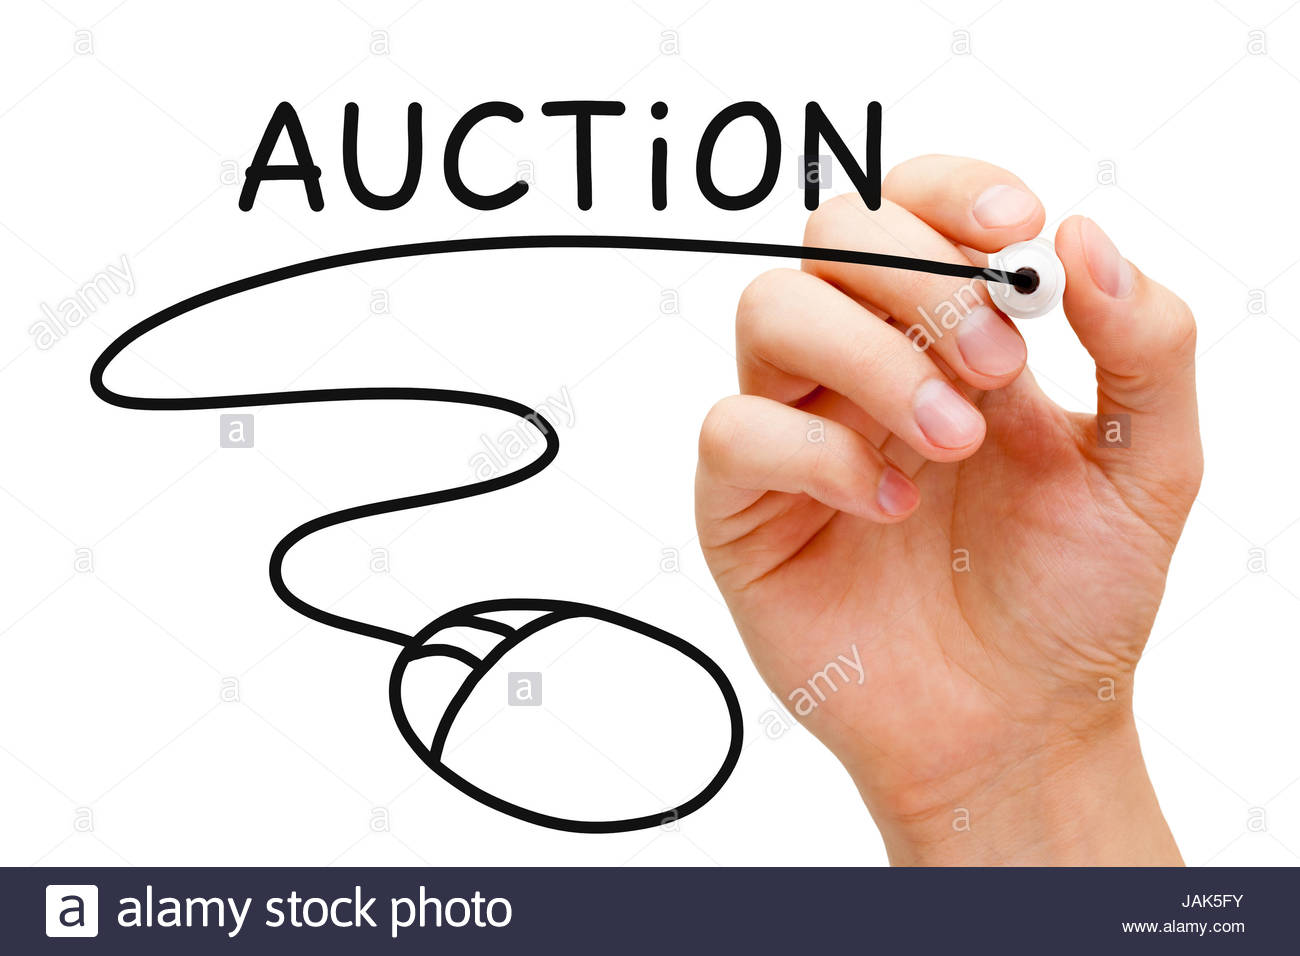 Hand sketching Online Auction Concept with black marker on transparent wipe board. - Stock Image